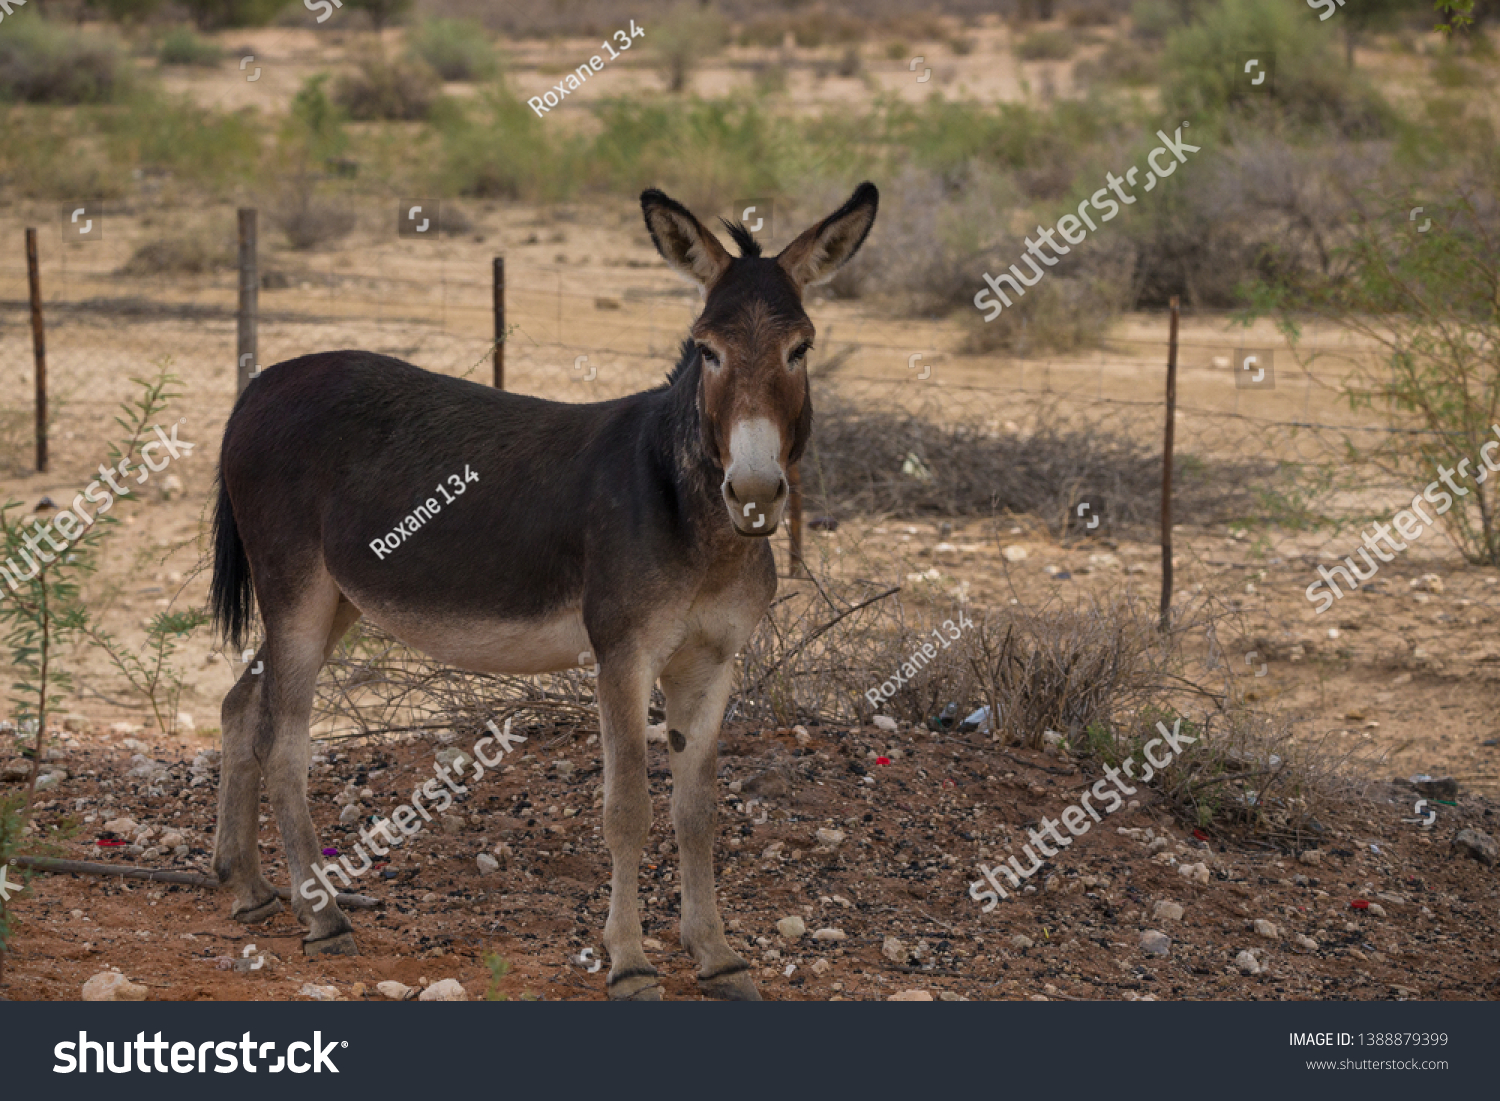 stock-photo-close-up-isolated-donkey-por